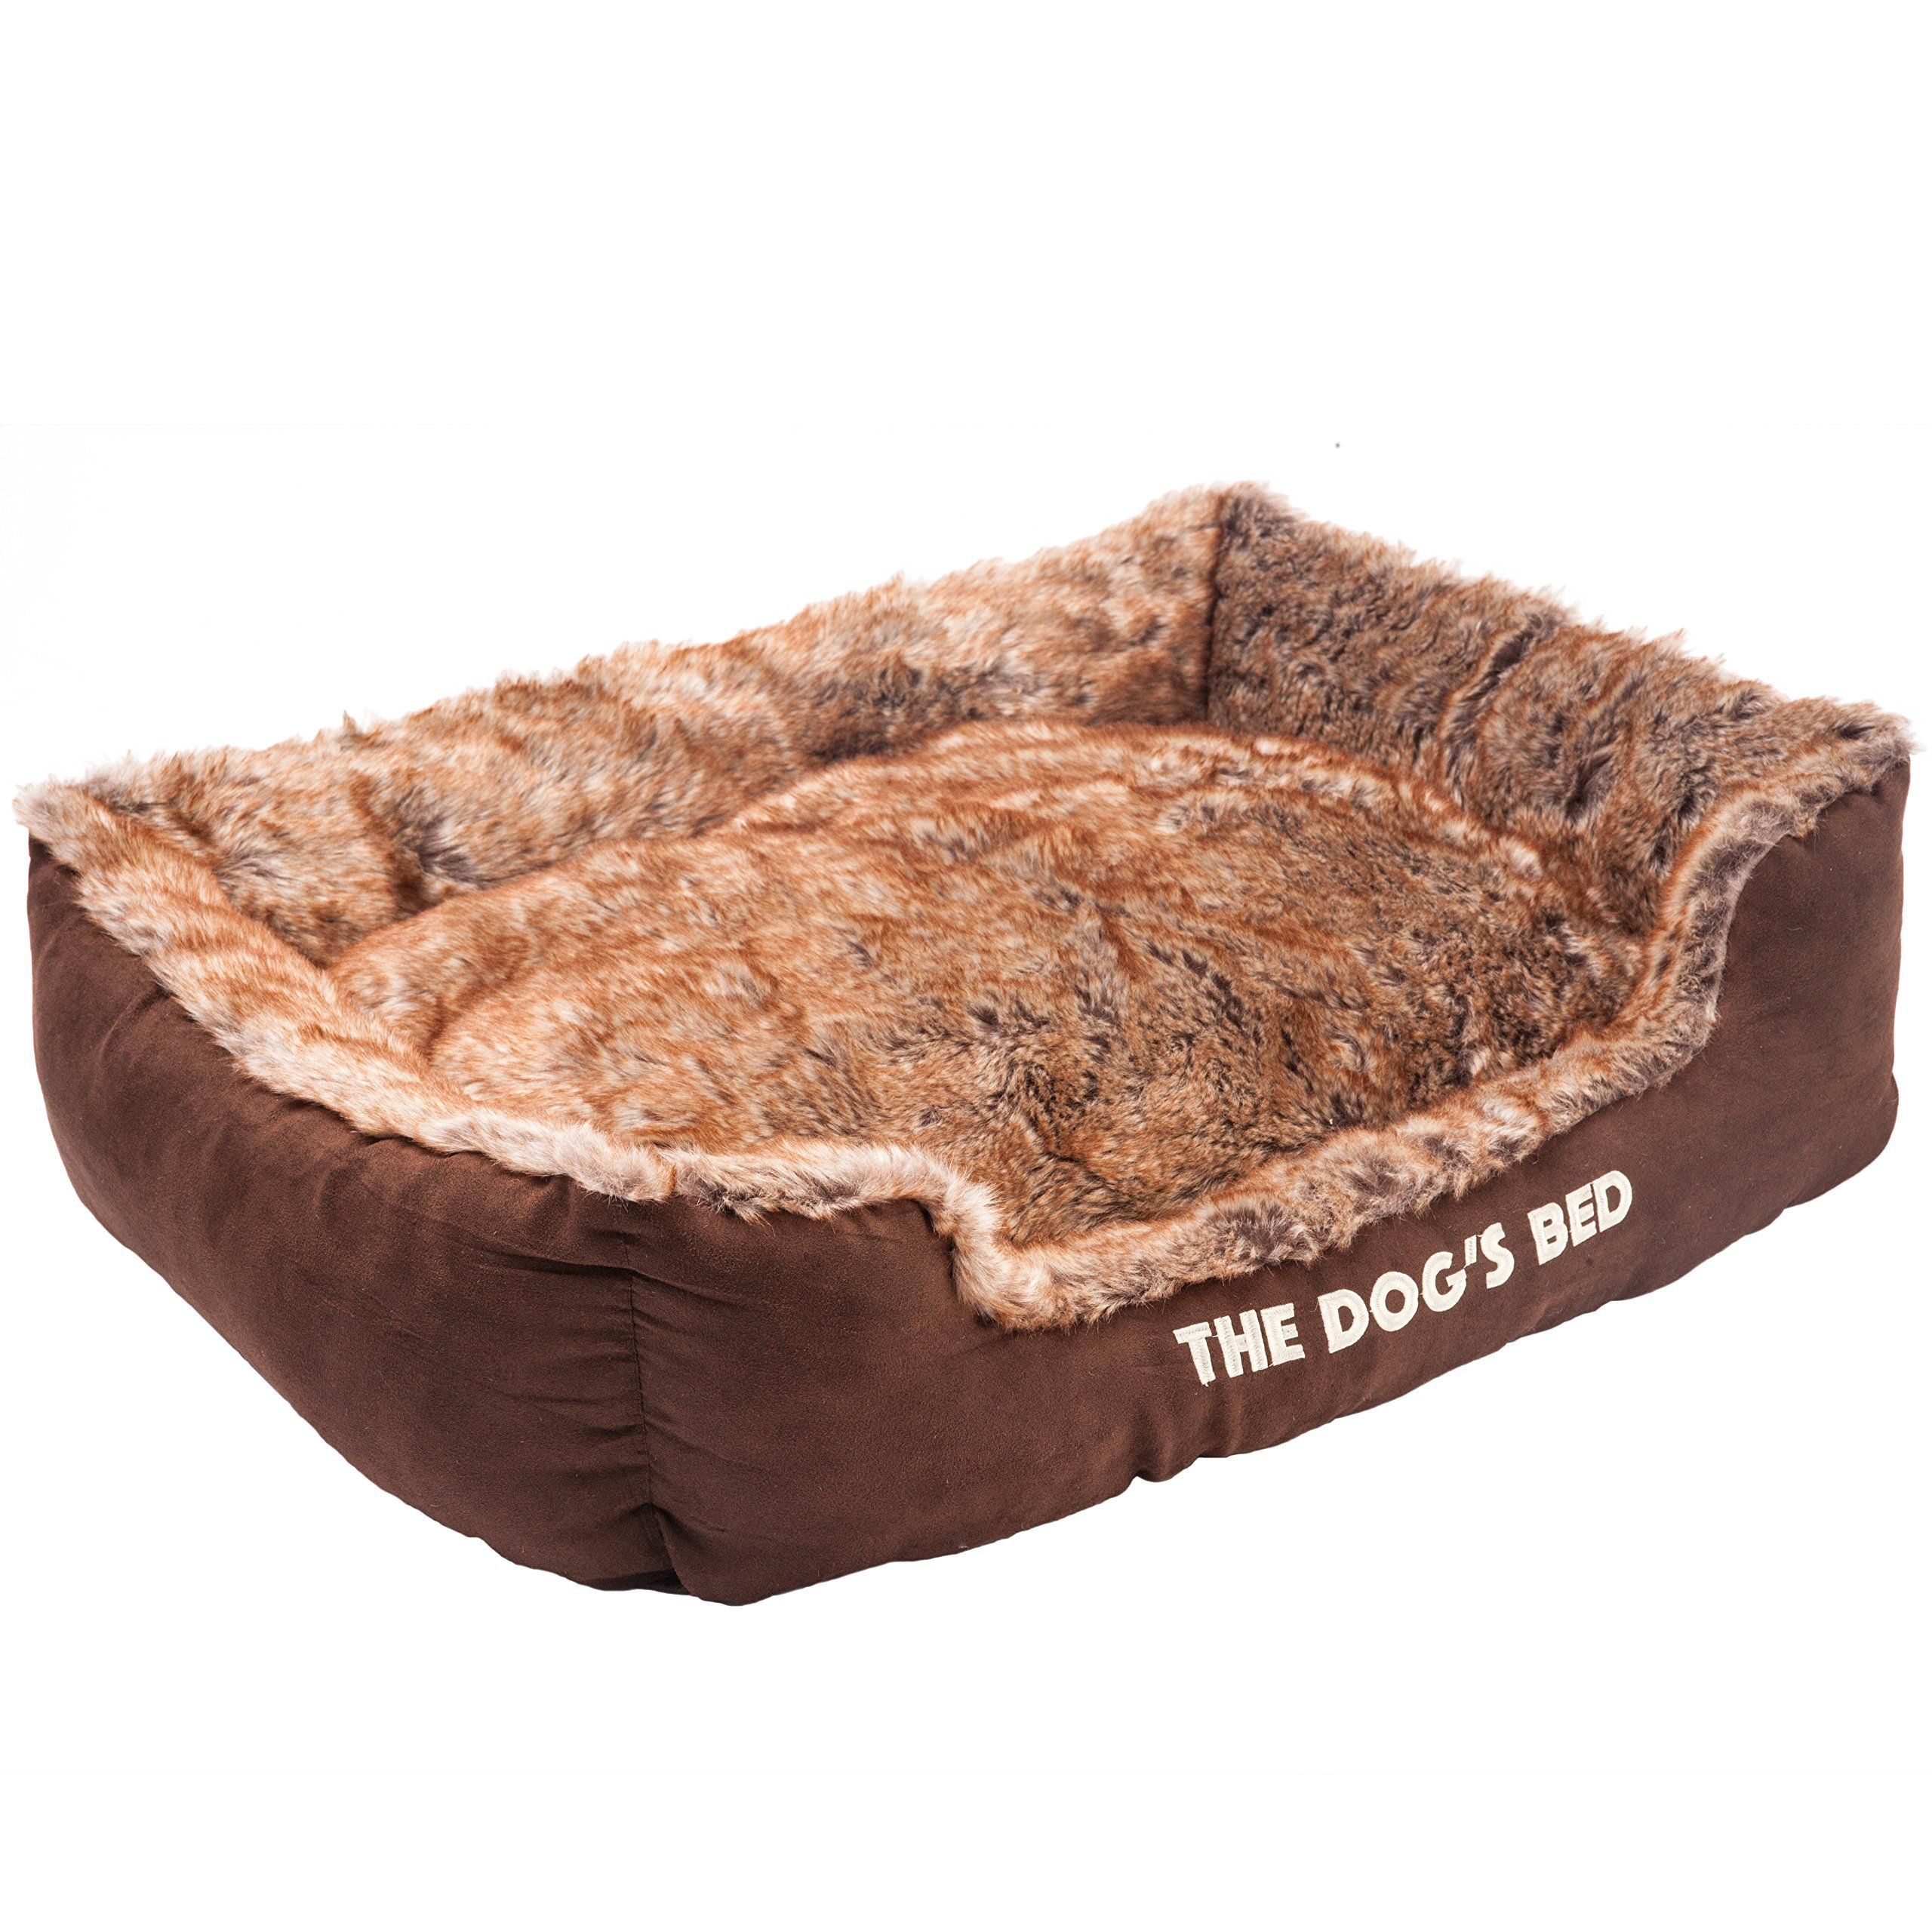 The Dog's Bed Premium Plush Soft Dog Bed Brown XL Fully